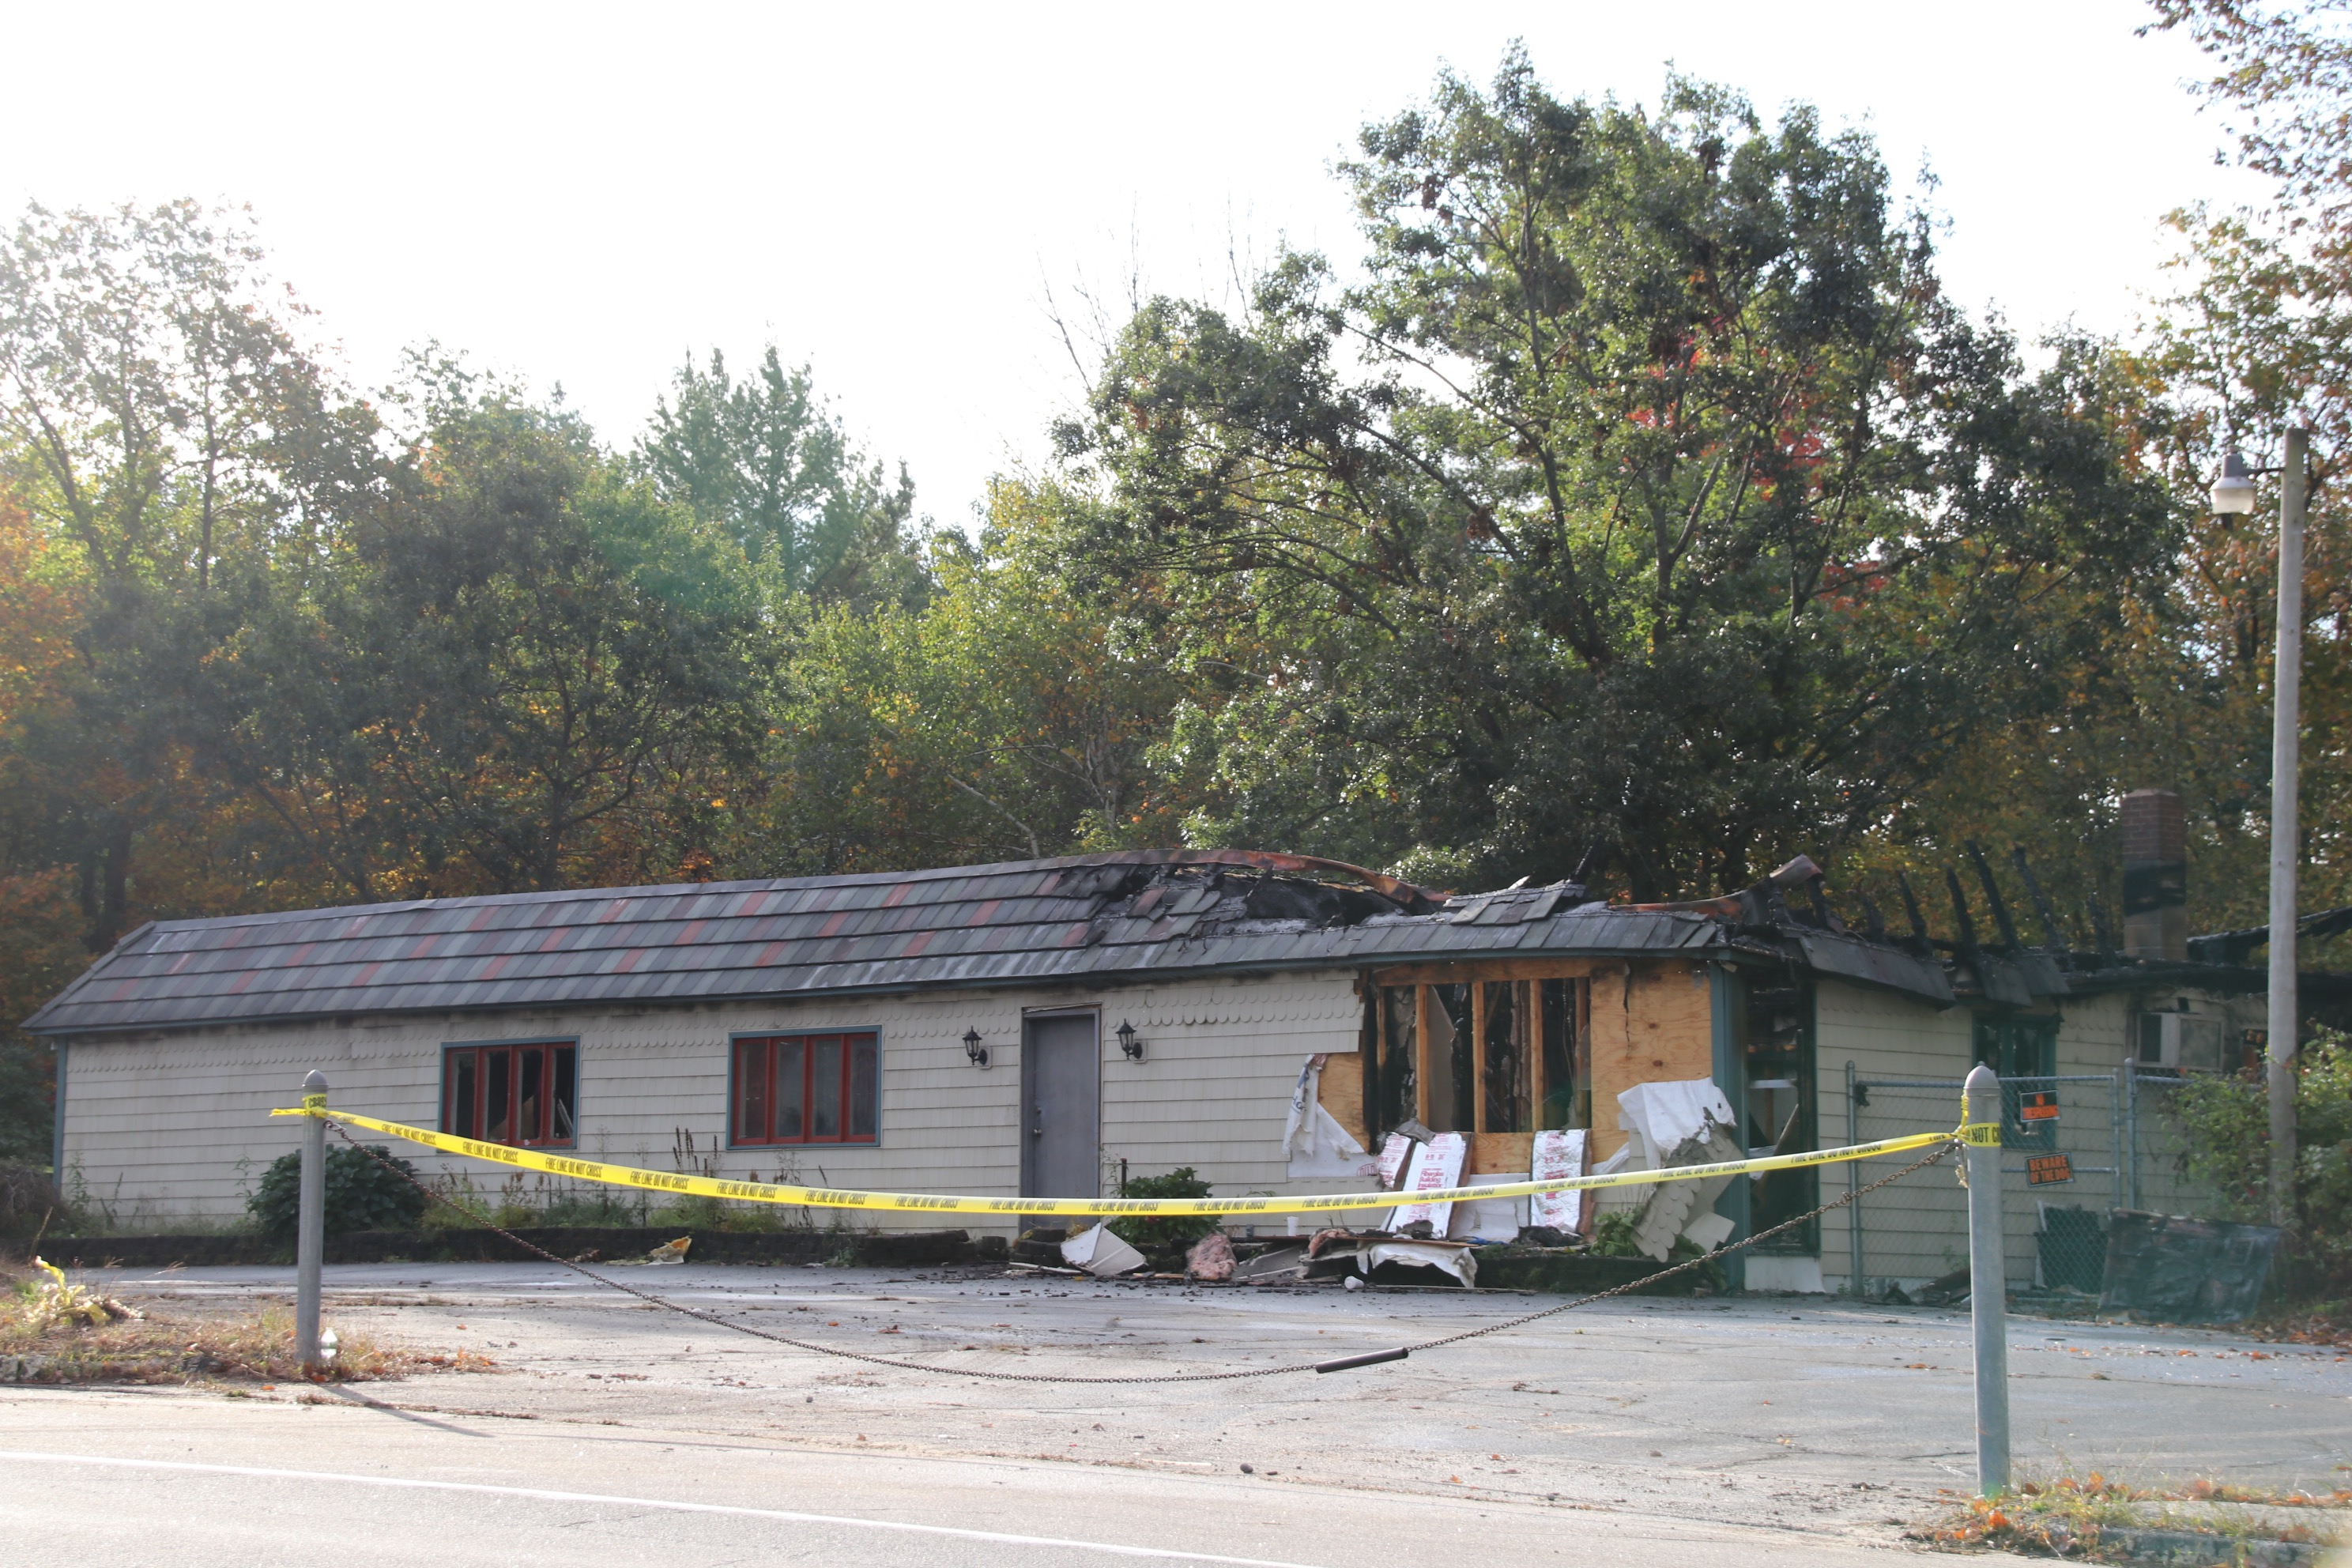 This commercial building at 122 Sanford Road in Alfred was damaged by fire, which broke out Friday evening. No one was injured. The office of the State Fire Marshal is investigating. TAMMY WELLS/Journal Tribune